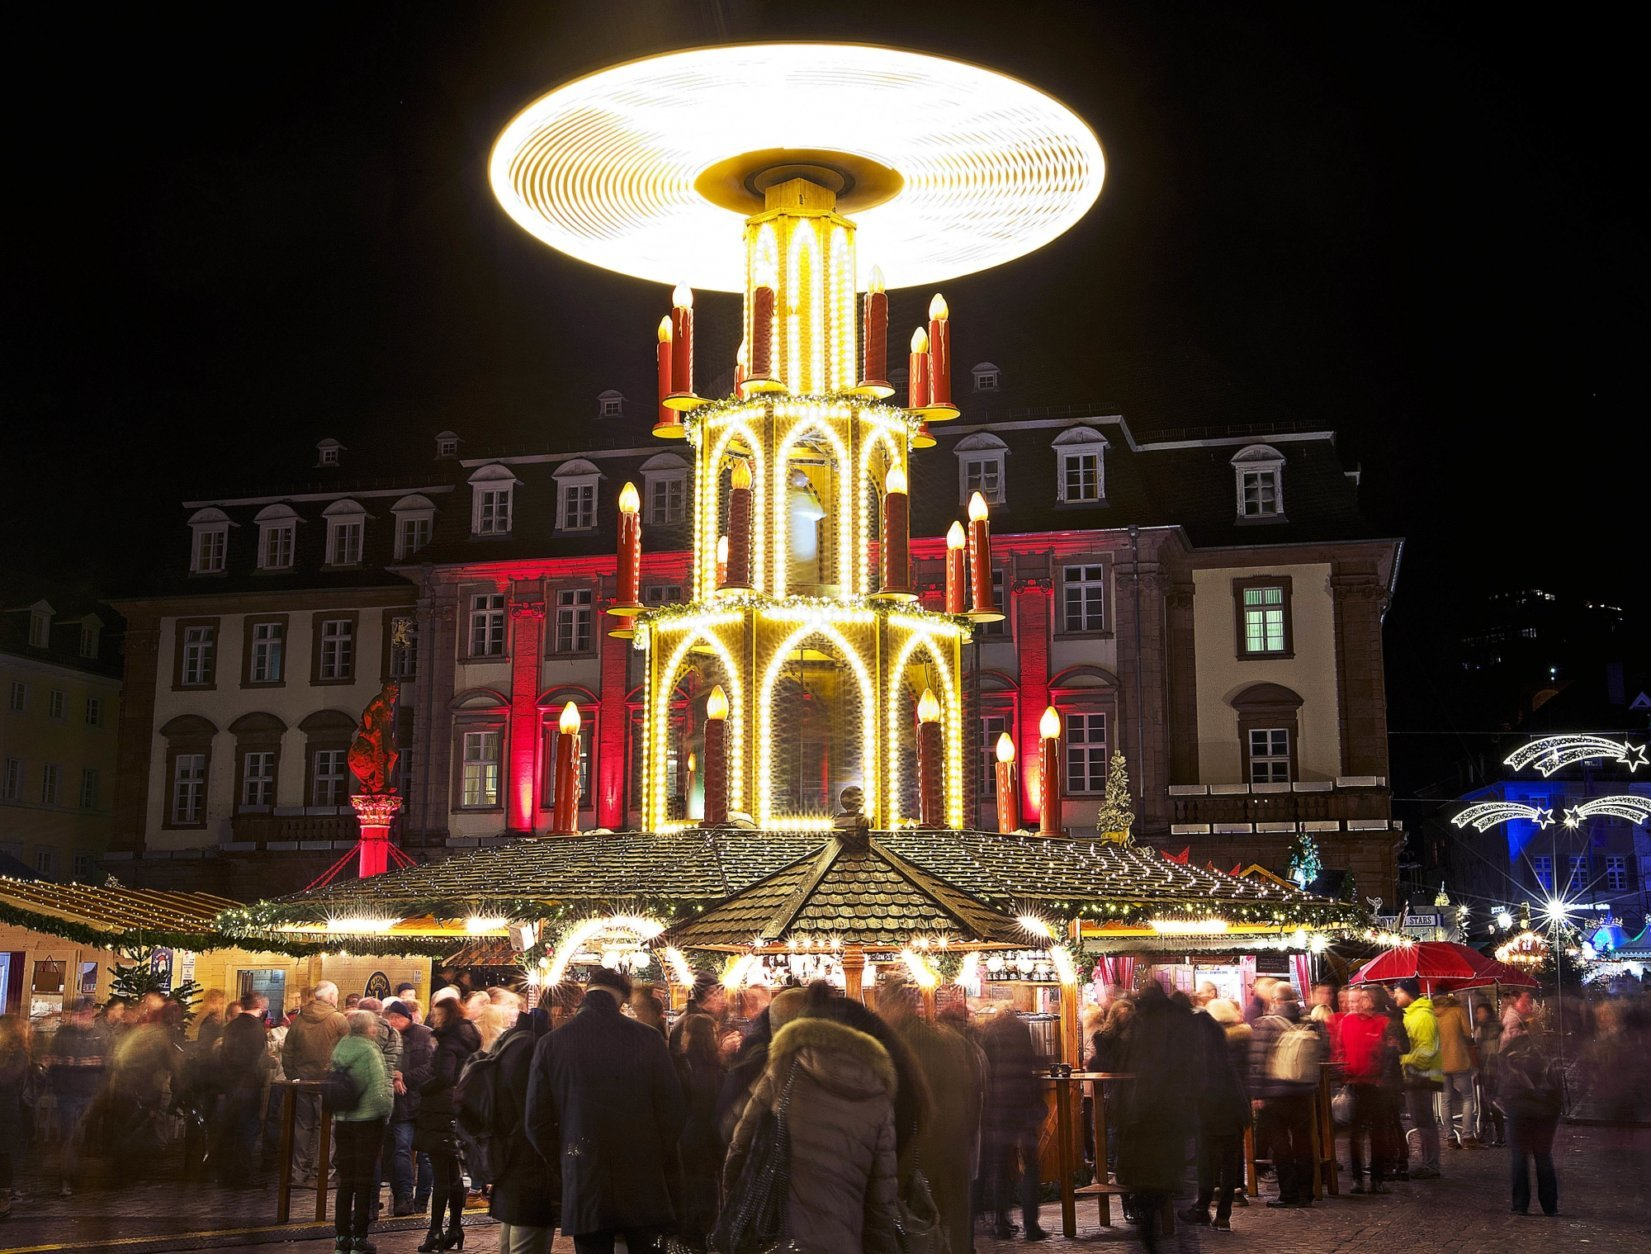 In this Tuesday, Dec. 4, 2018 photo people pay a visit to the traditional Christmas market with a turning pyramid in Heidelberg, Germany. The Christmas market In the Old Town of Heidelberg underneath the famous castle is one of most picturesque christmas markets in southern Germany.  (AP Photo/Michael Probst)